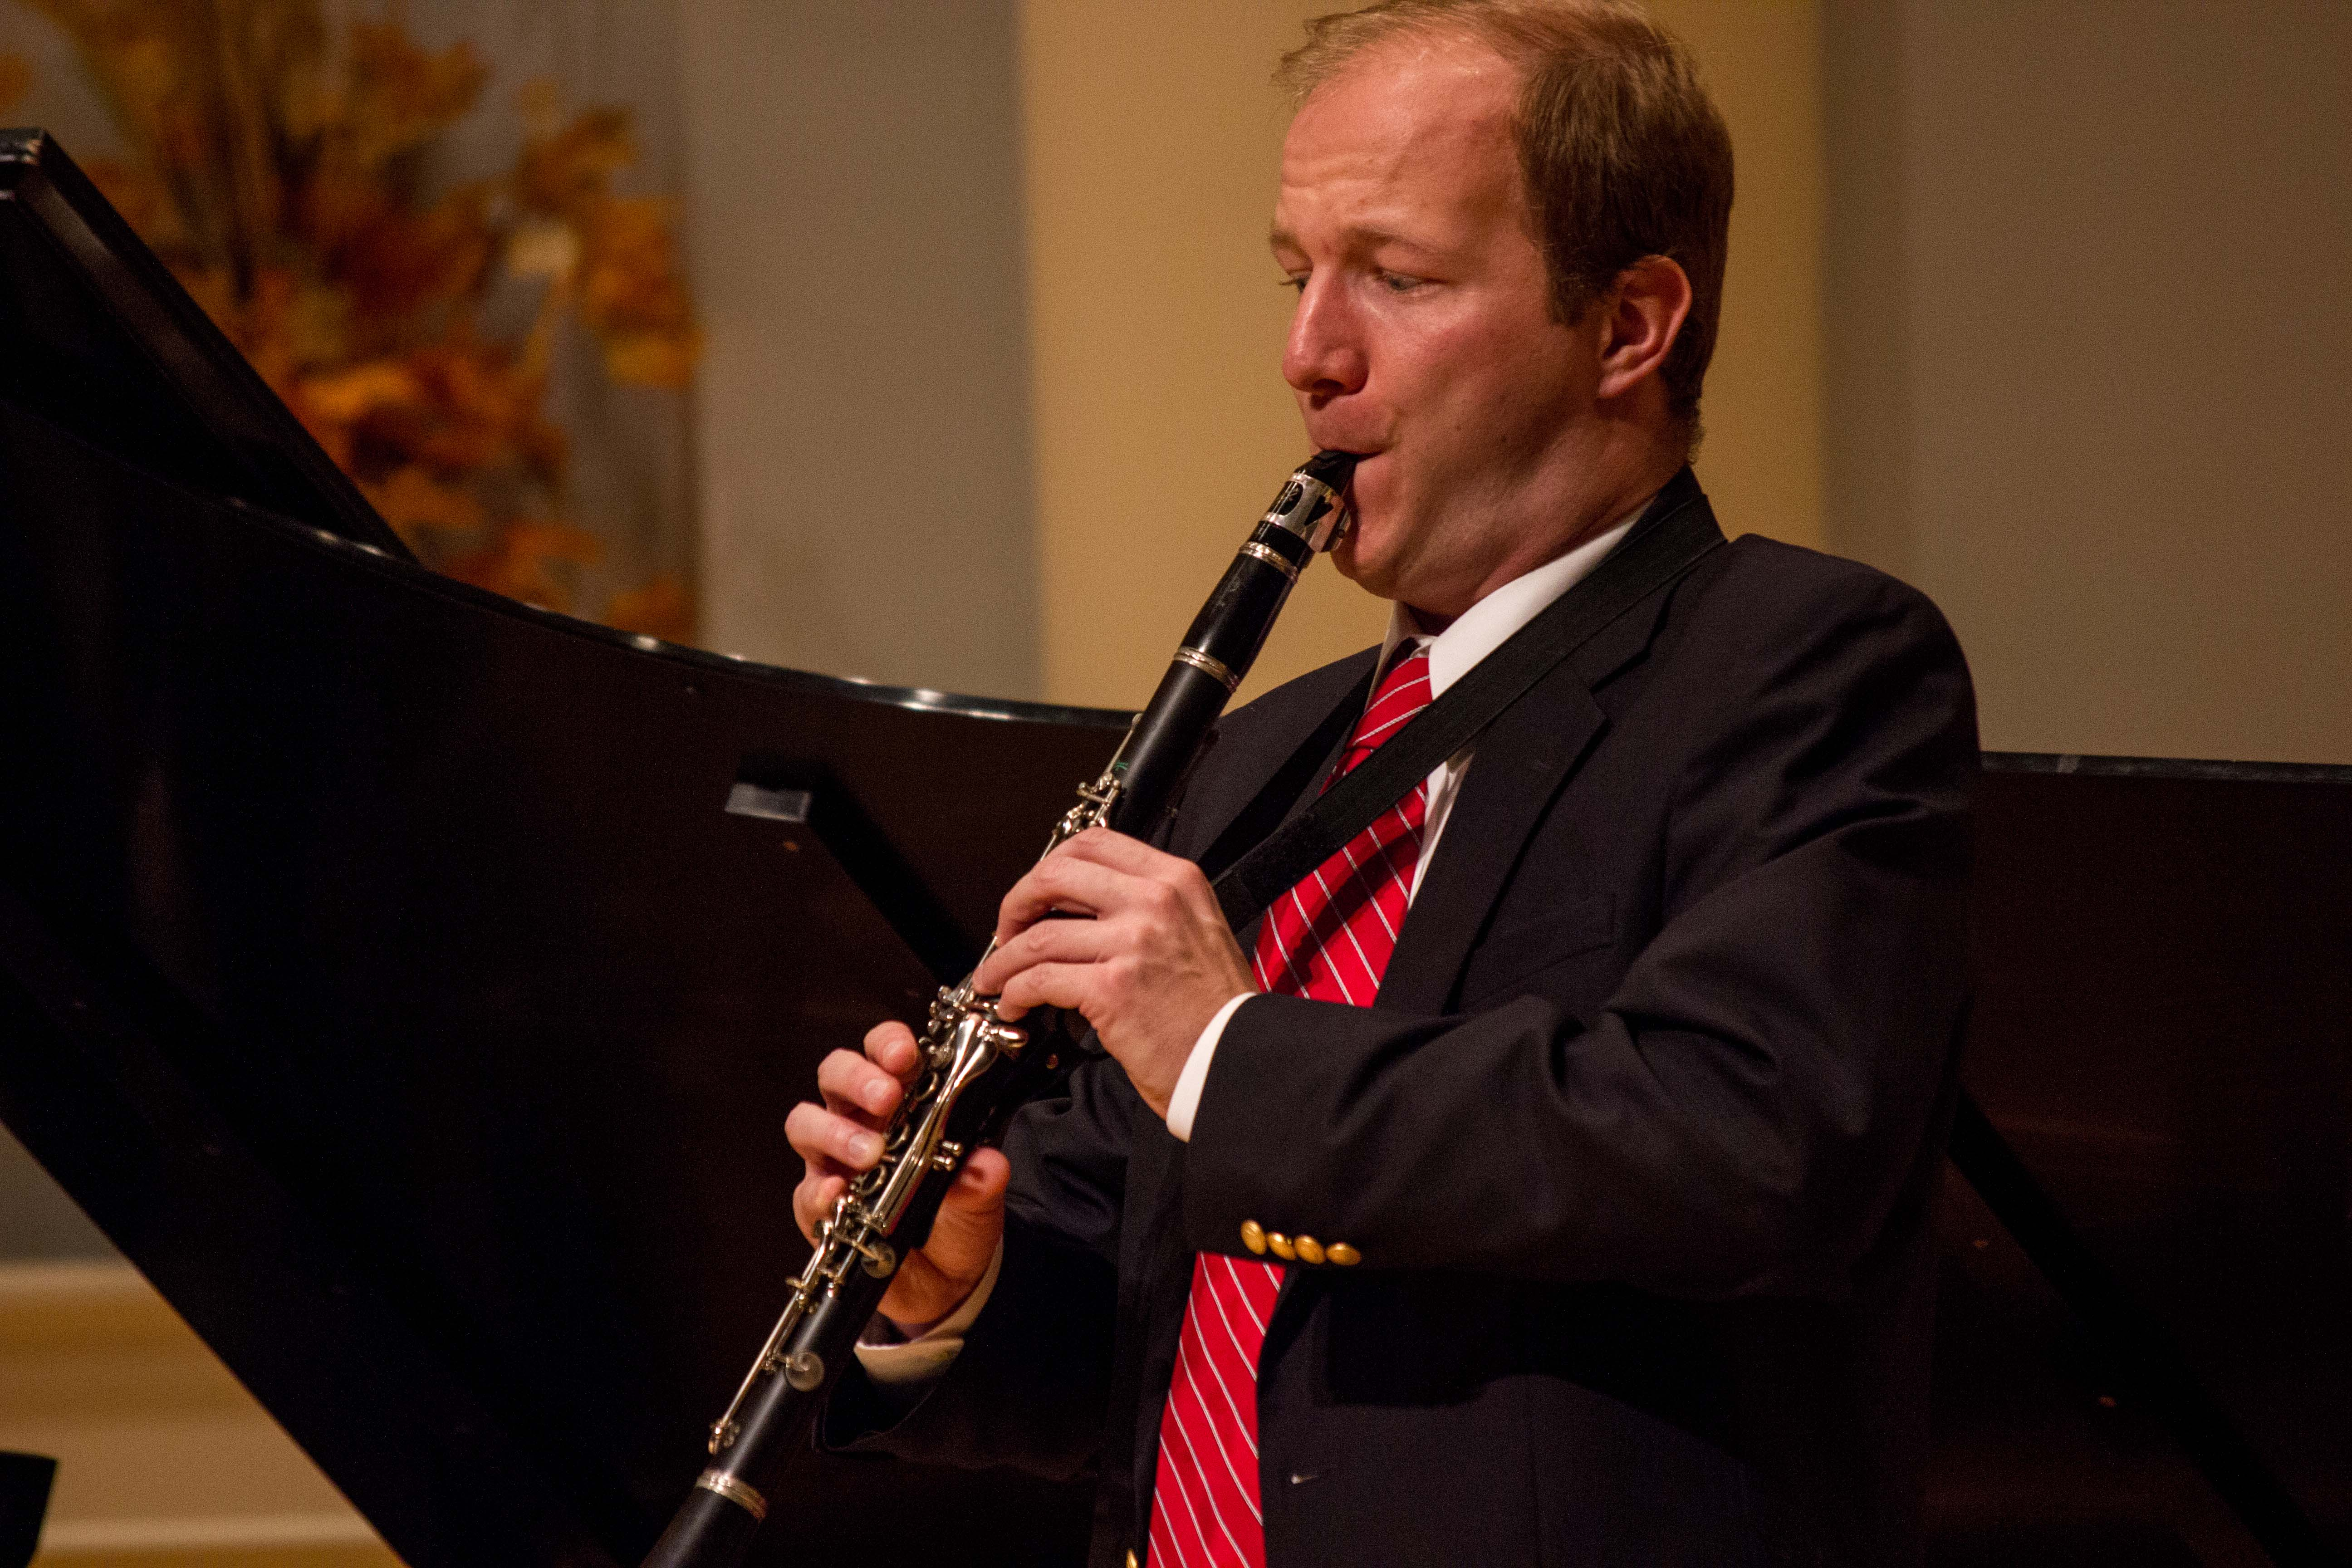 Clarinet virtuoso returns to Wisconsin for exclusive performance